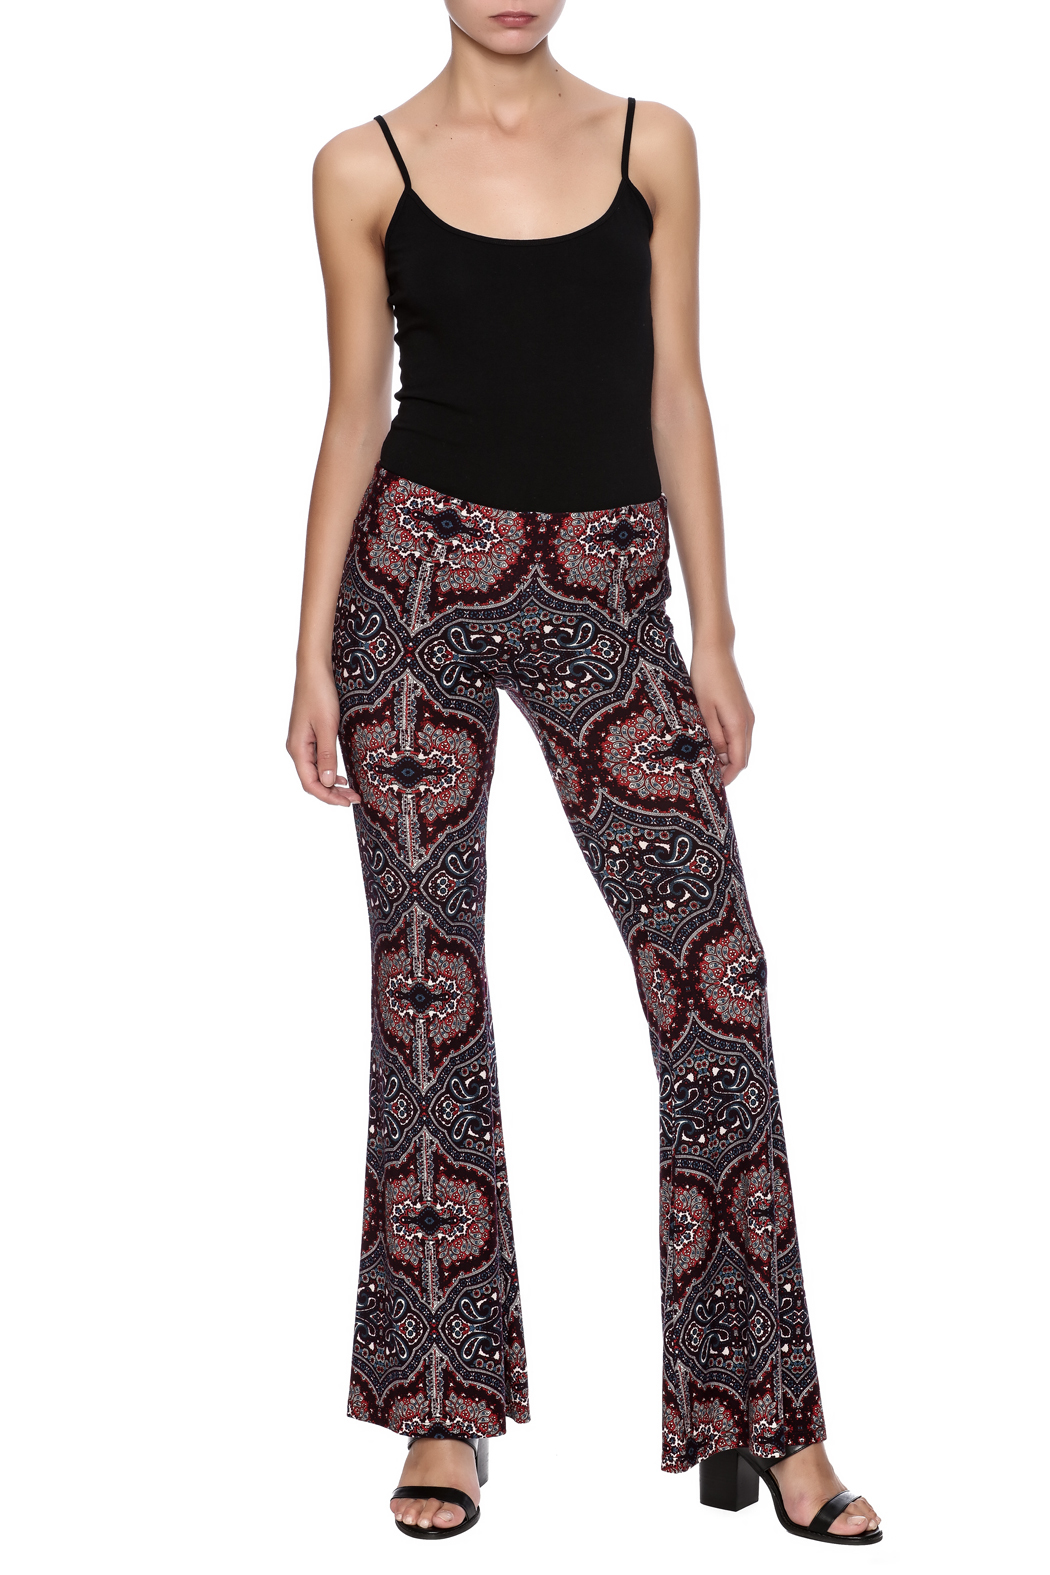 Veronica M Print Flare Pant - Front Full Image